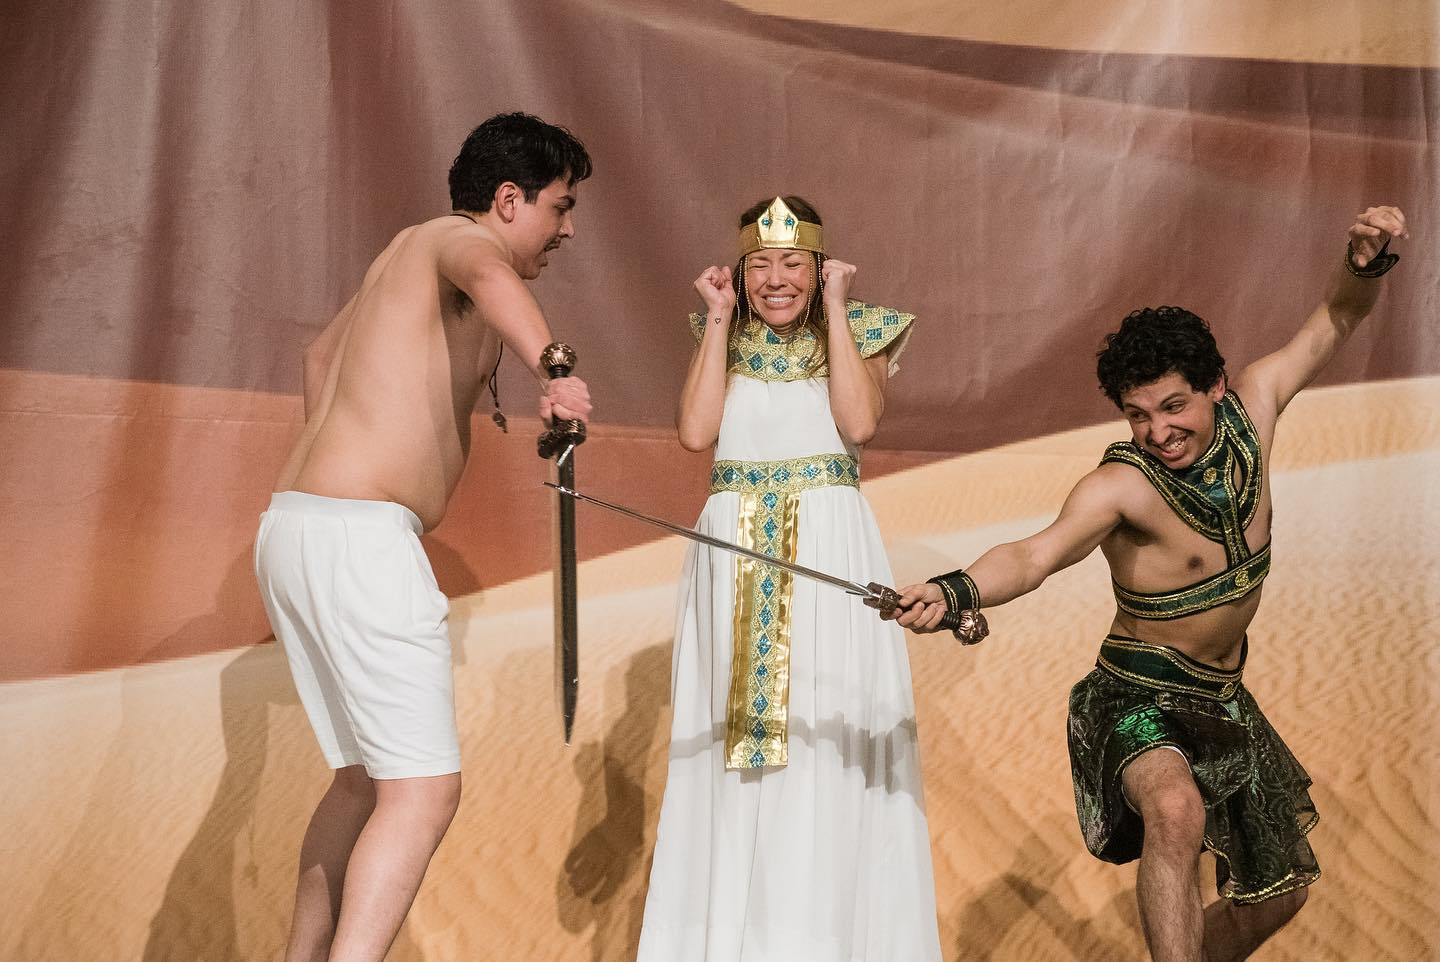 An egyptian monarch is showing frustration as a person (presumably a slave) is lashing out at another man in front. These are all actors.